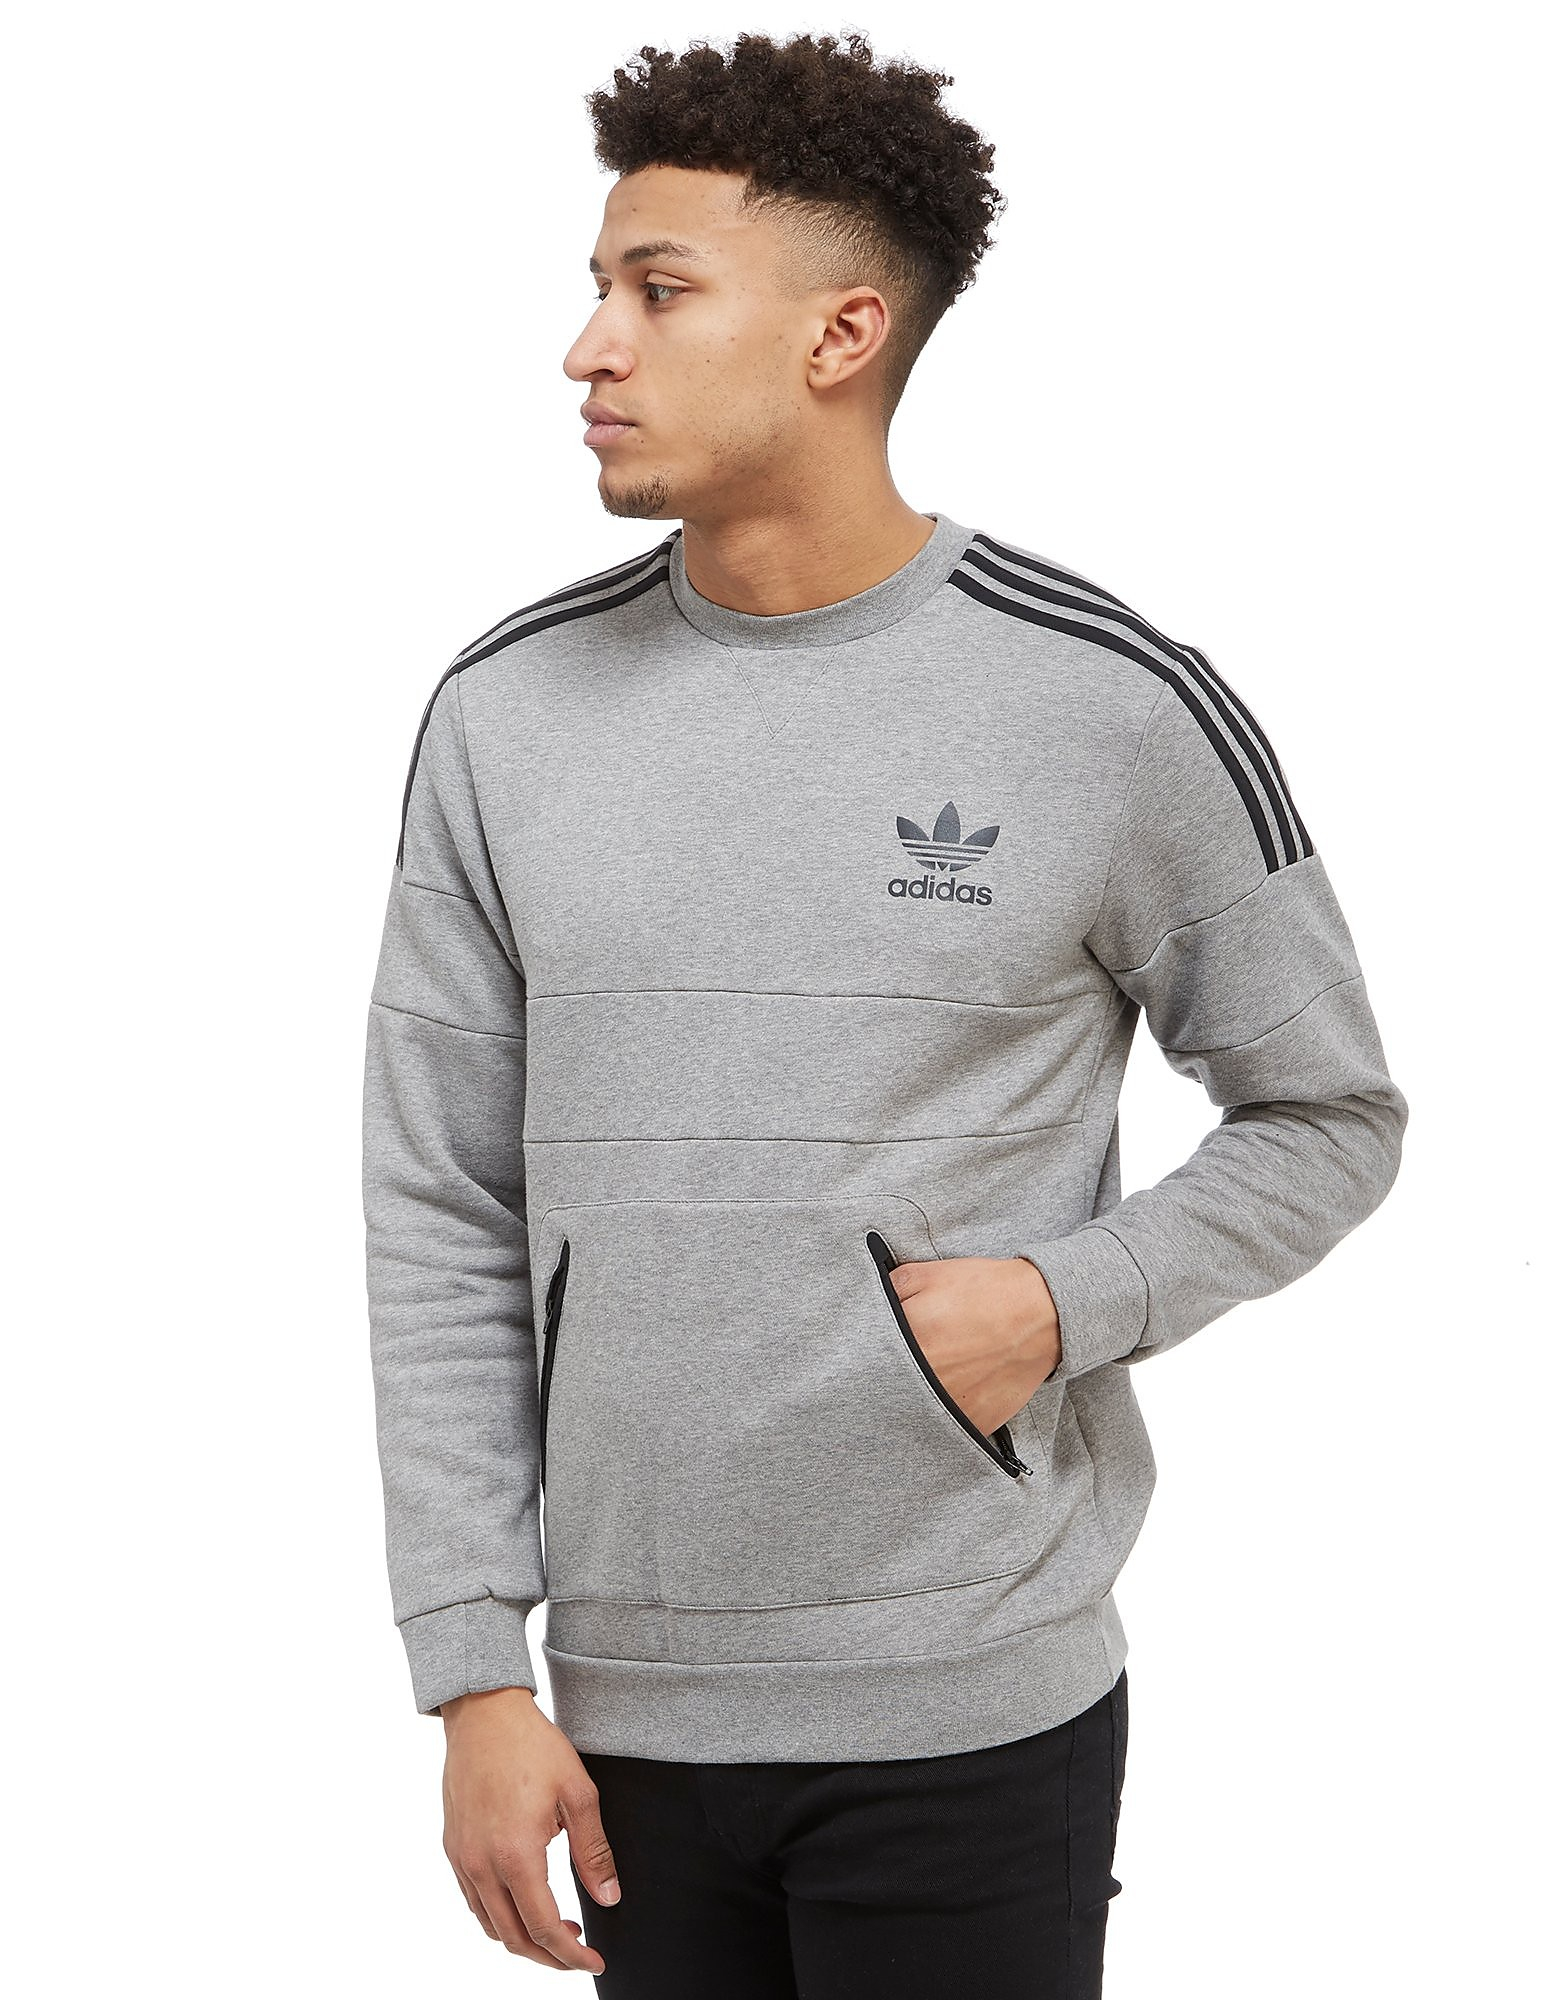 adidas Nomad Pocket Sweatshirt